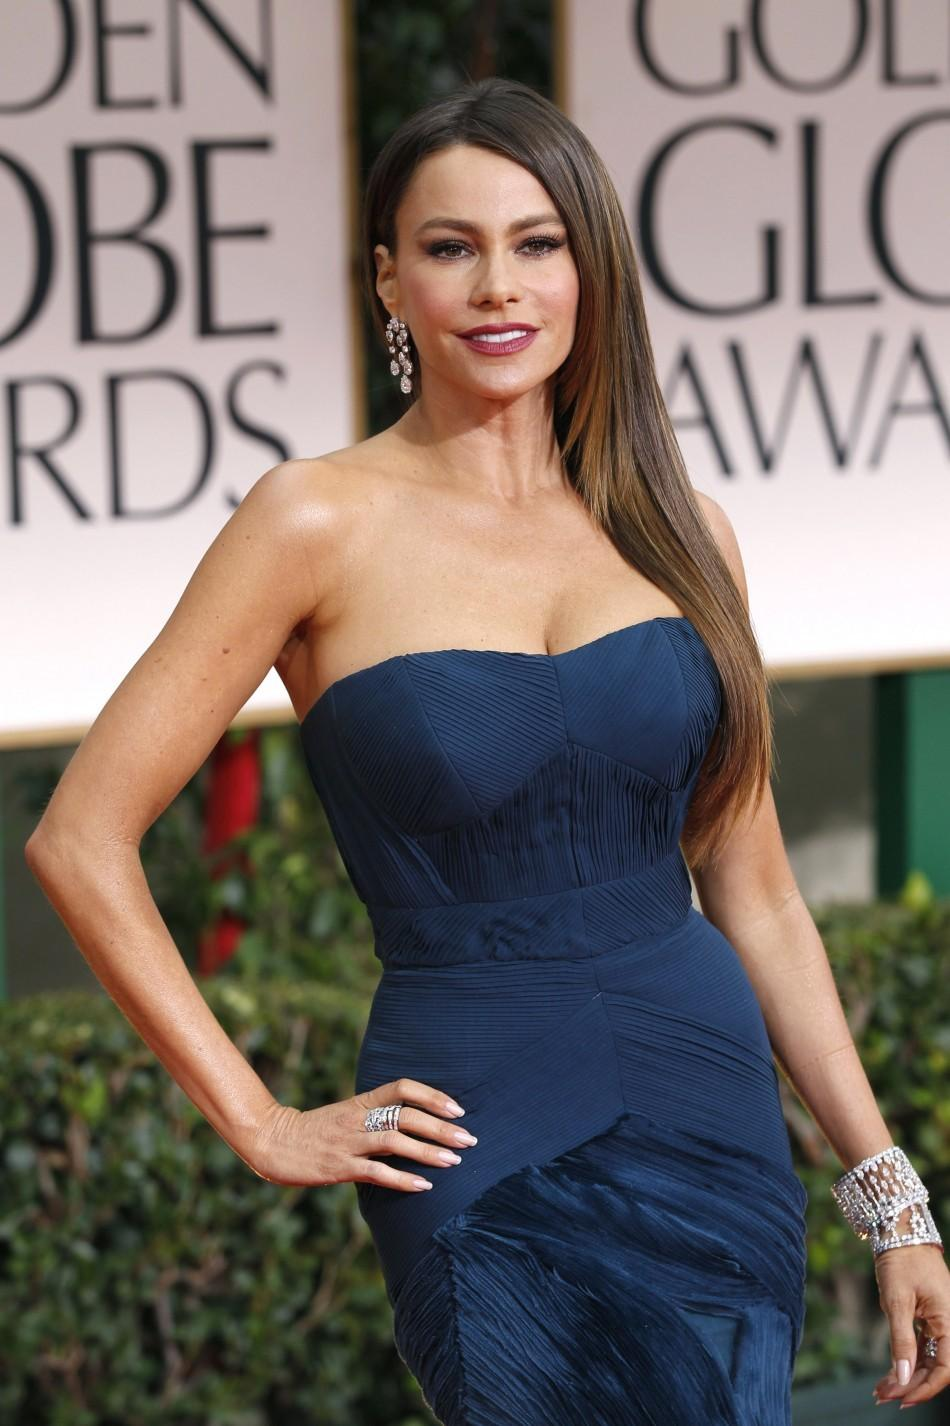 Actress Sofia Vergara